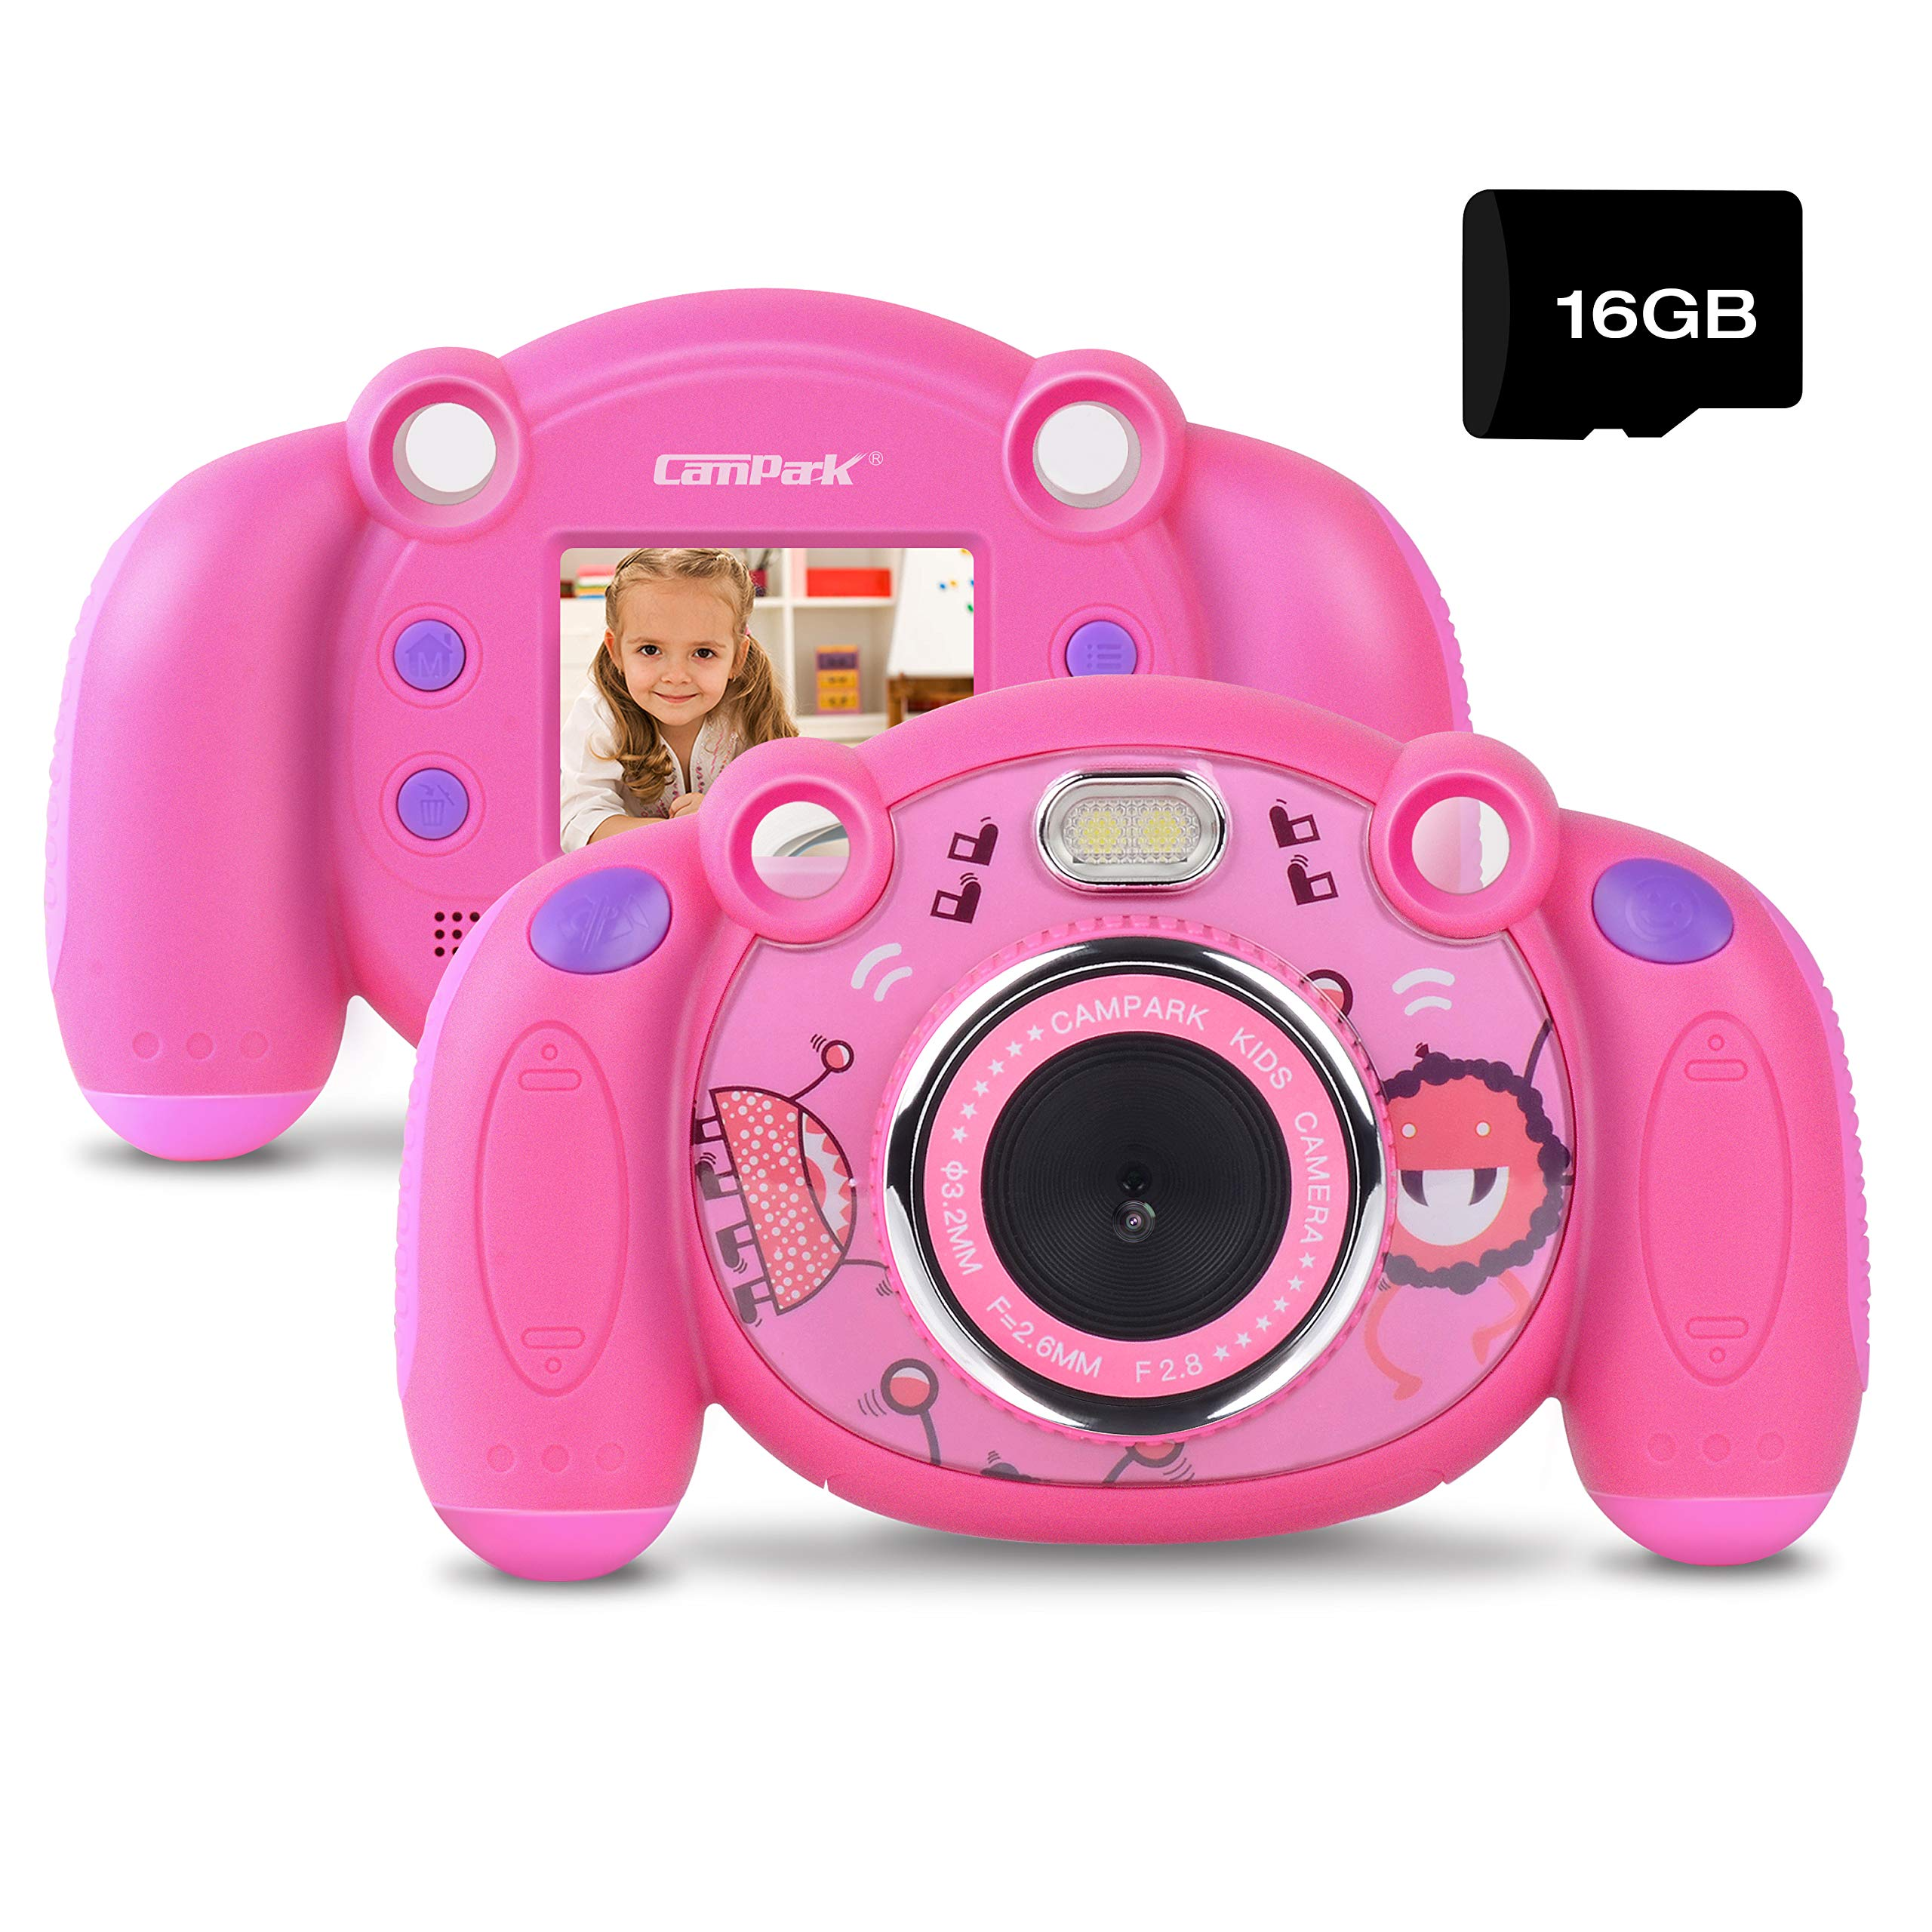 Campark Kids Camera, Mini Child Camcorder with HD LCD Display 16GB Memory Card for Girls Pink Great Birthday Gift